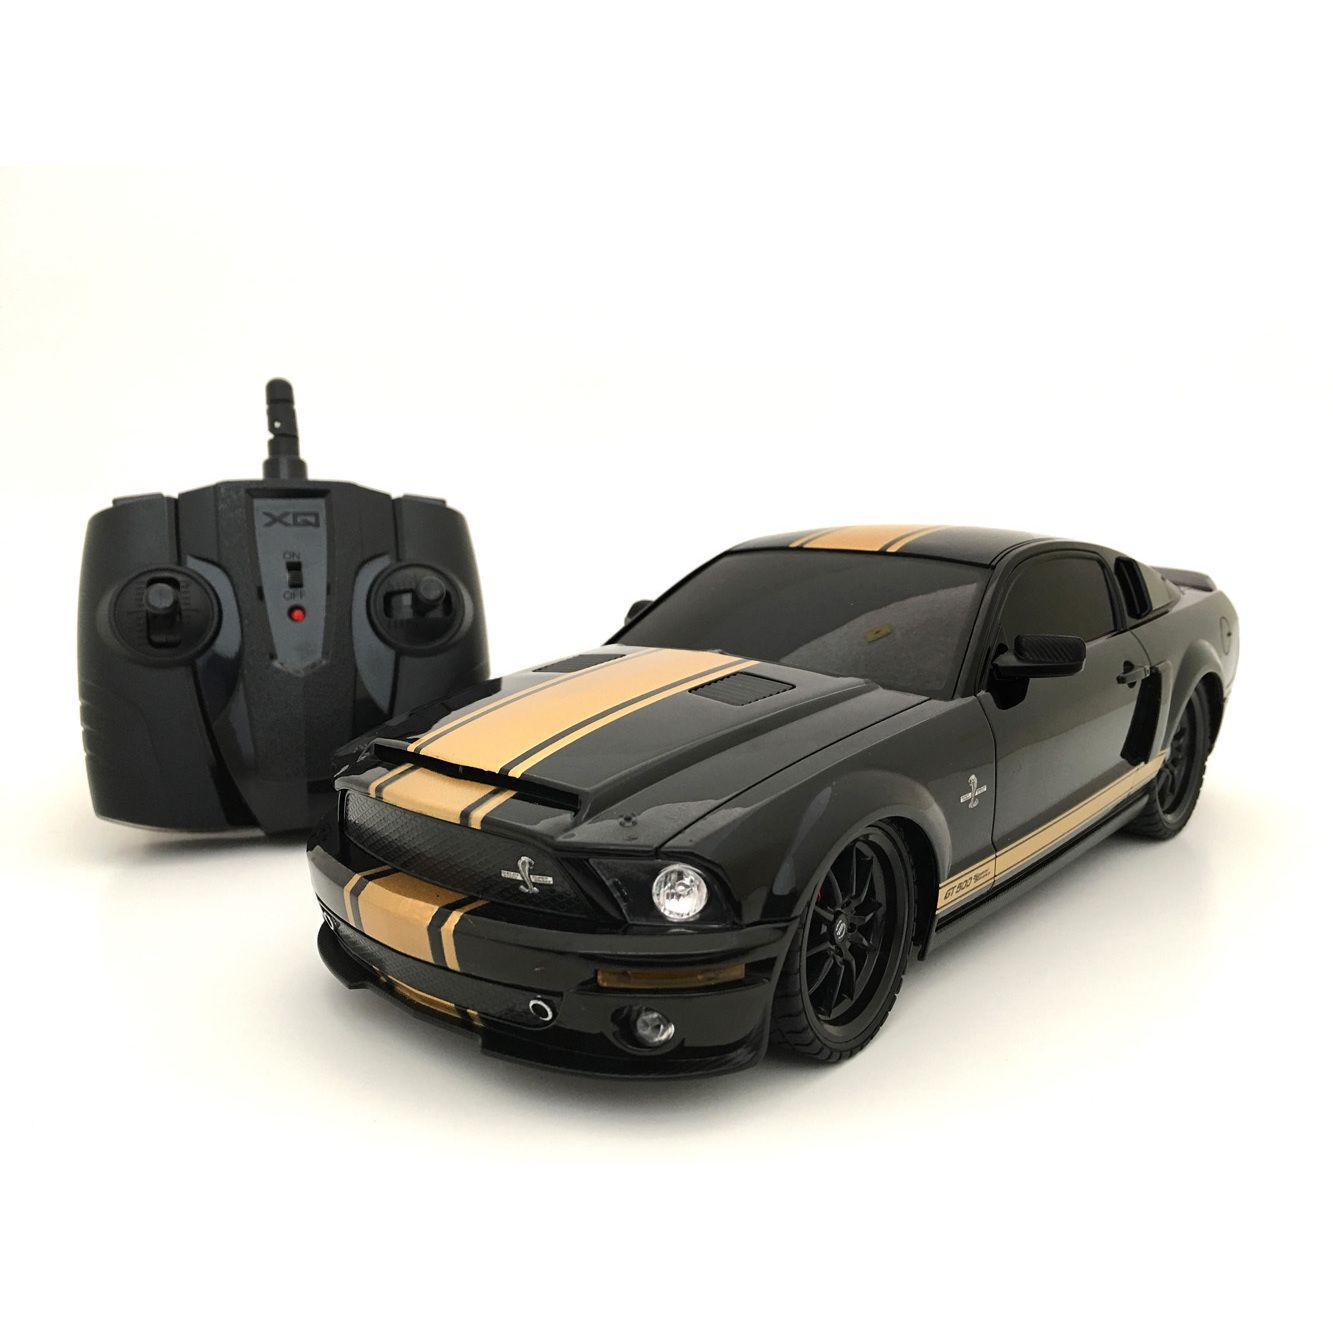 Ford Mustang Shelby GT350 2.4 GHz Remote Control 118-scale Multi-channel  sc 1 st  Pinterest & Ford Mustang Shelby GT350 2.4 GHz Remote Control 1:18-scale Multi ... markmcfarlin.com